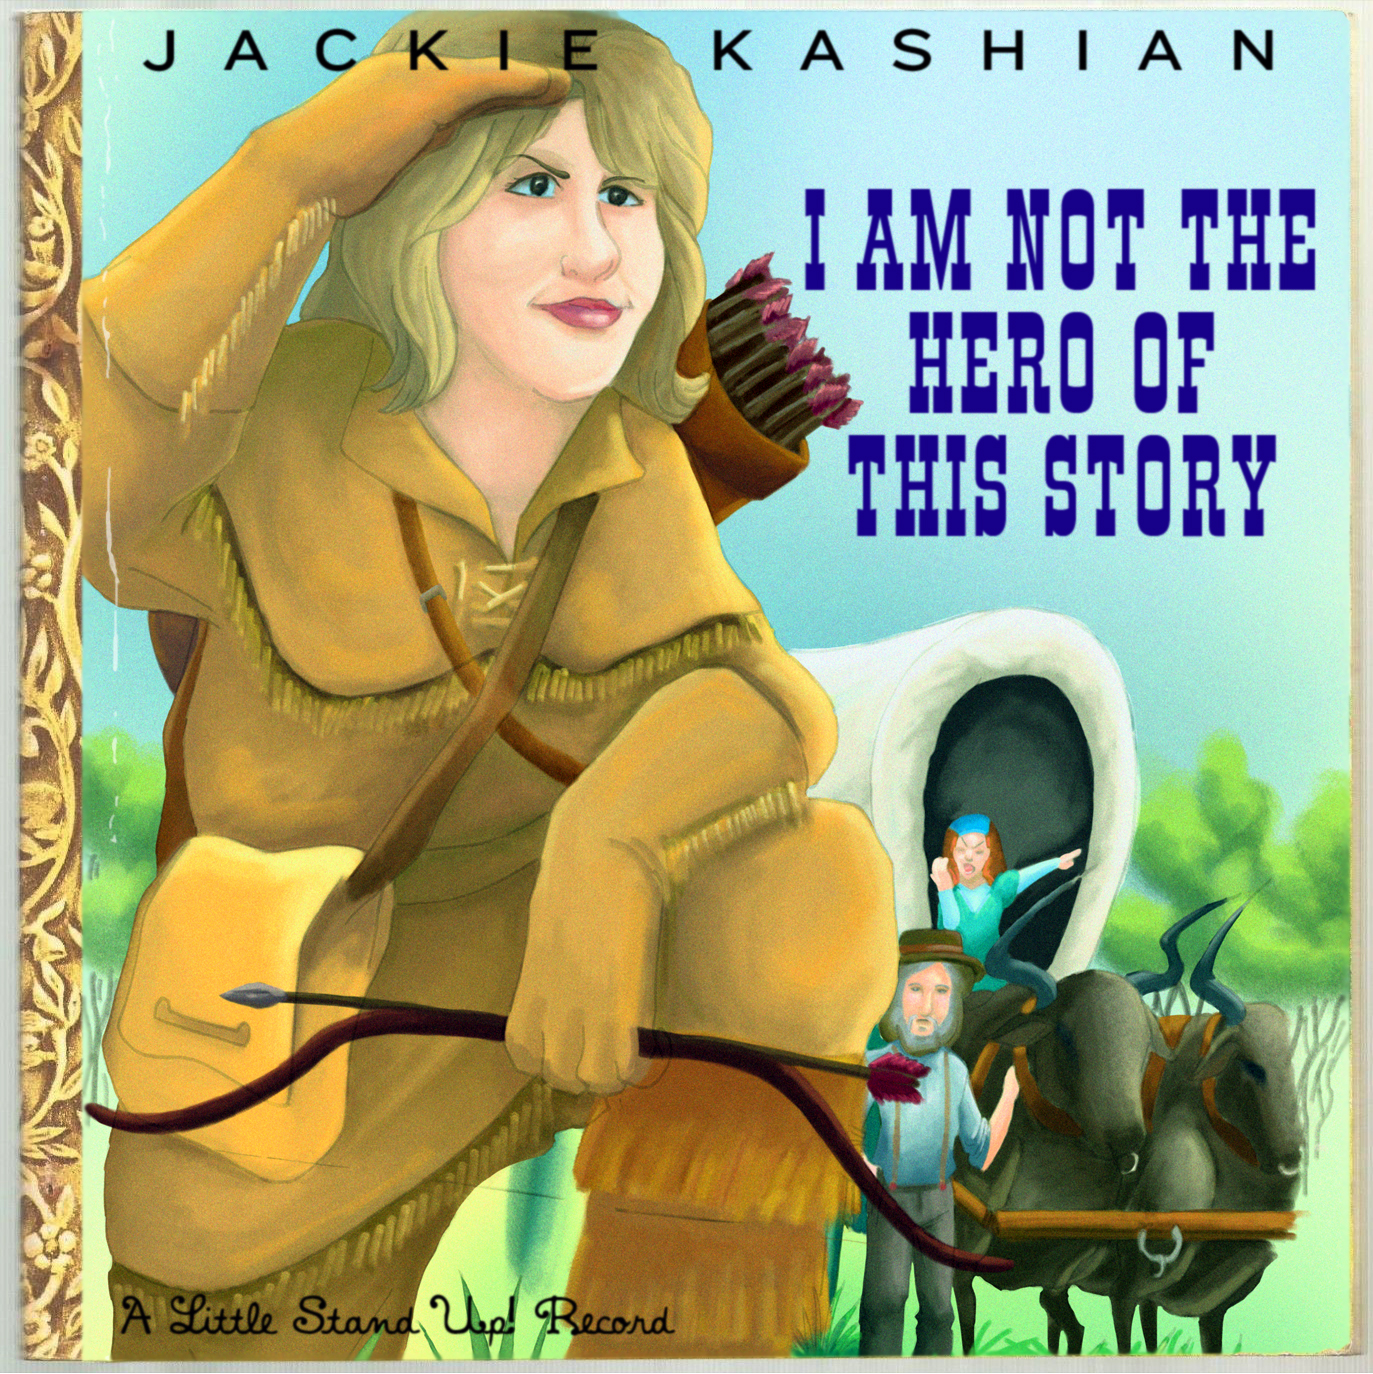 COMEDY NEWS:  NEW ALBUM FROM COMEDIAN AND (NOT YOUR) HERO JACKIE KASHIAN OUT TOMORROW MARCH 3